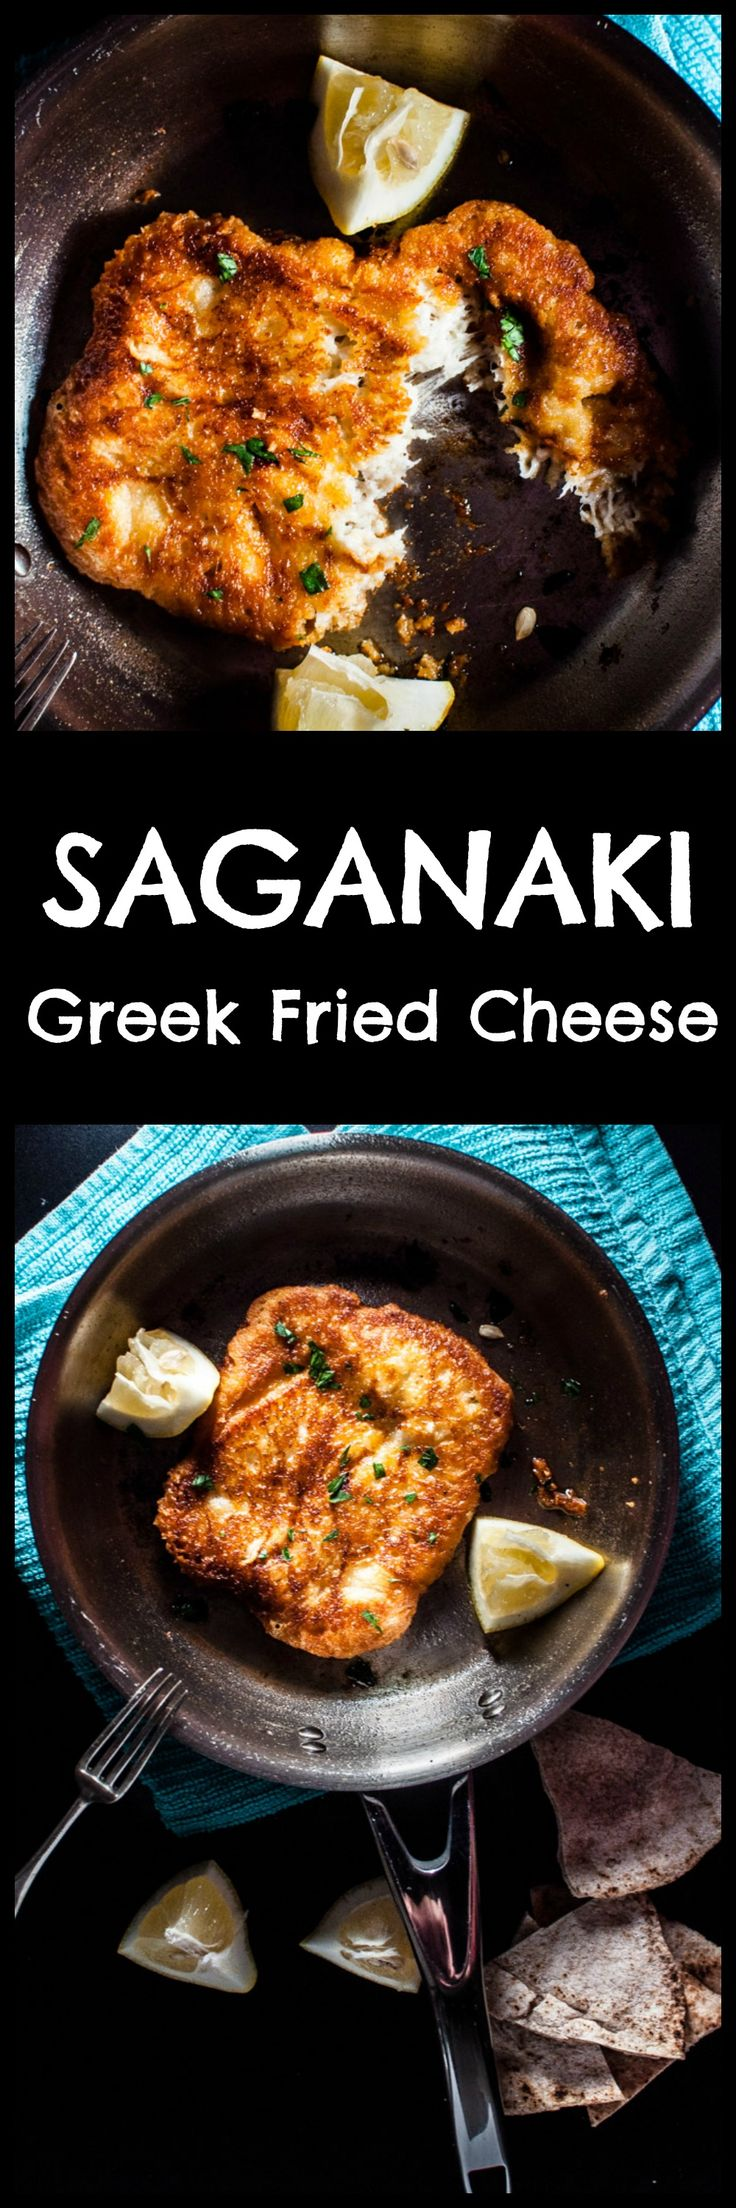 Saganaki (Greek fried cheese) is crunchy on the outside and melty on the inside. If you like cheese, you're going to love this appetizer. Ready in 10 minutes! Pin for later :)